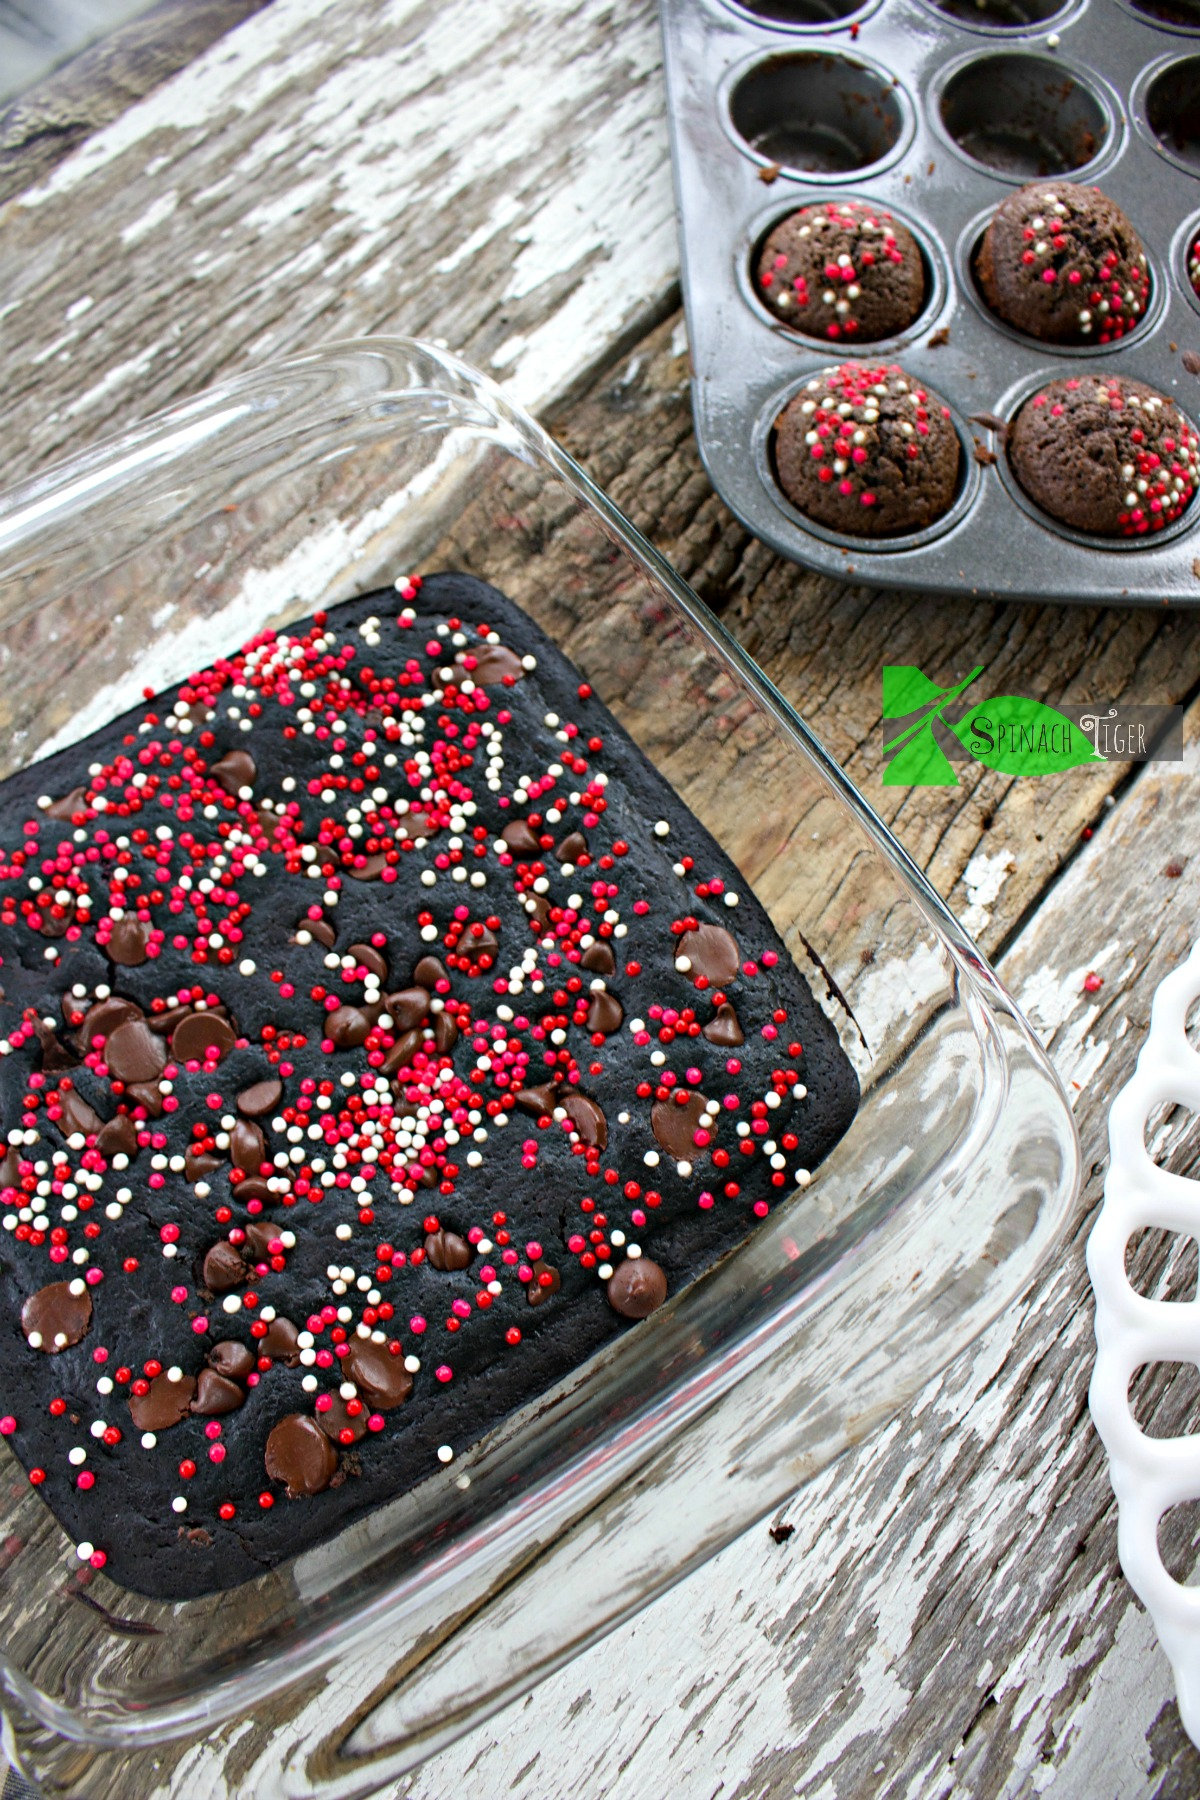 How to Make Dark Chocolate Diabetic Brownies from Spinach Tiger